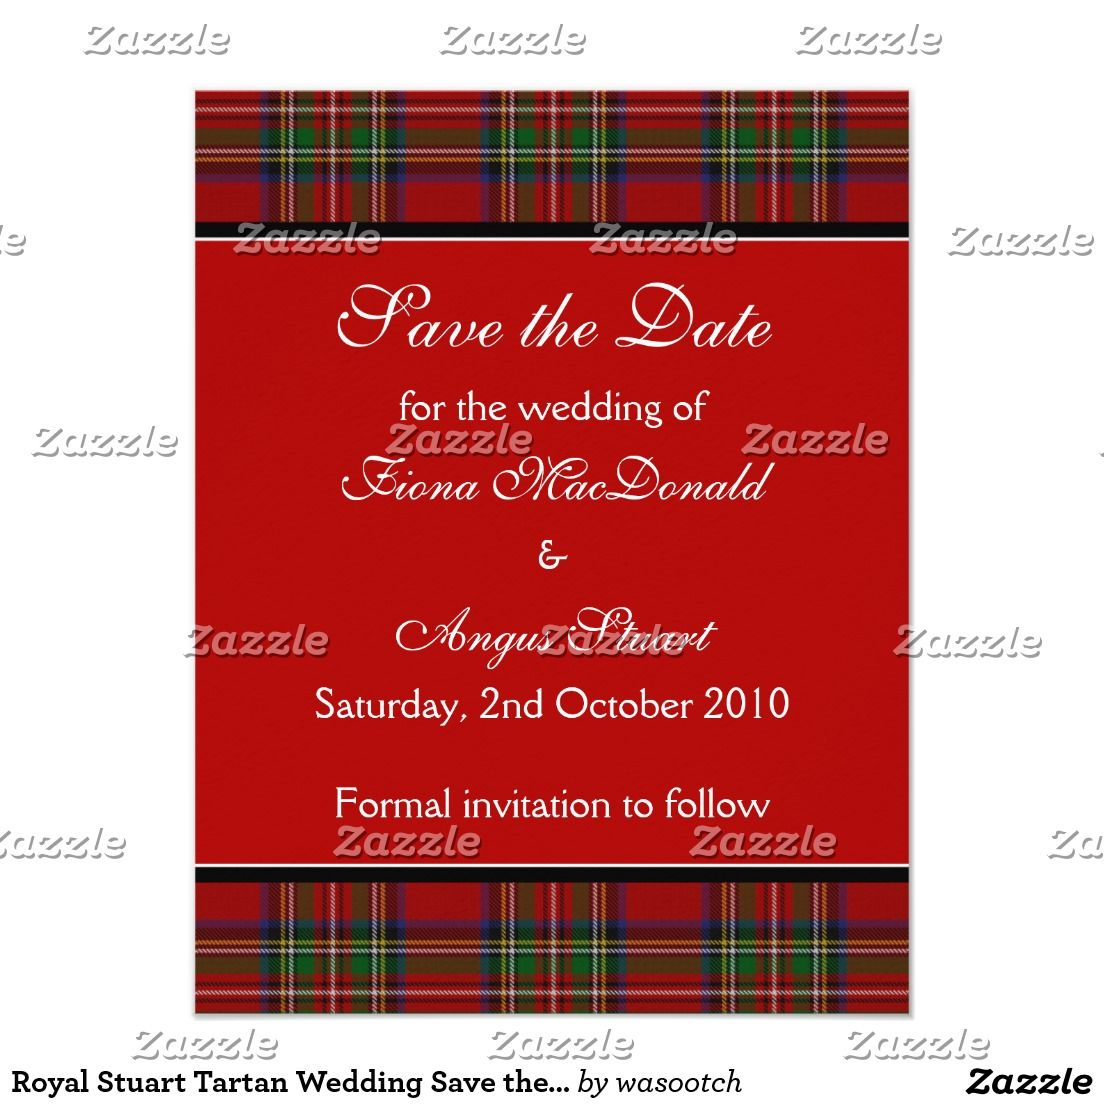 Royal Stuart Tartan Wedding Save the Date Card | Pinterest | Tartan ...